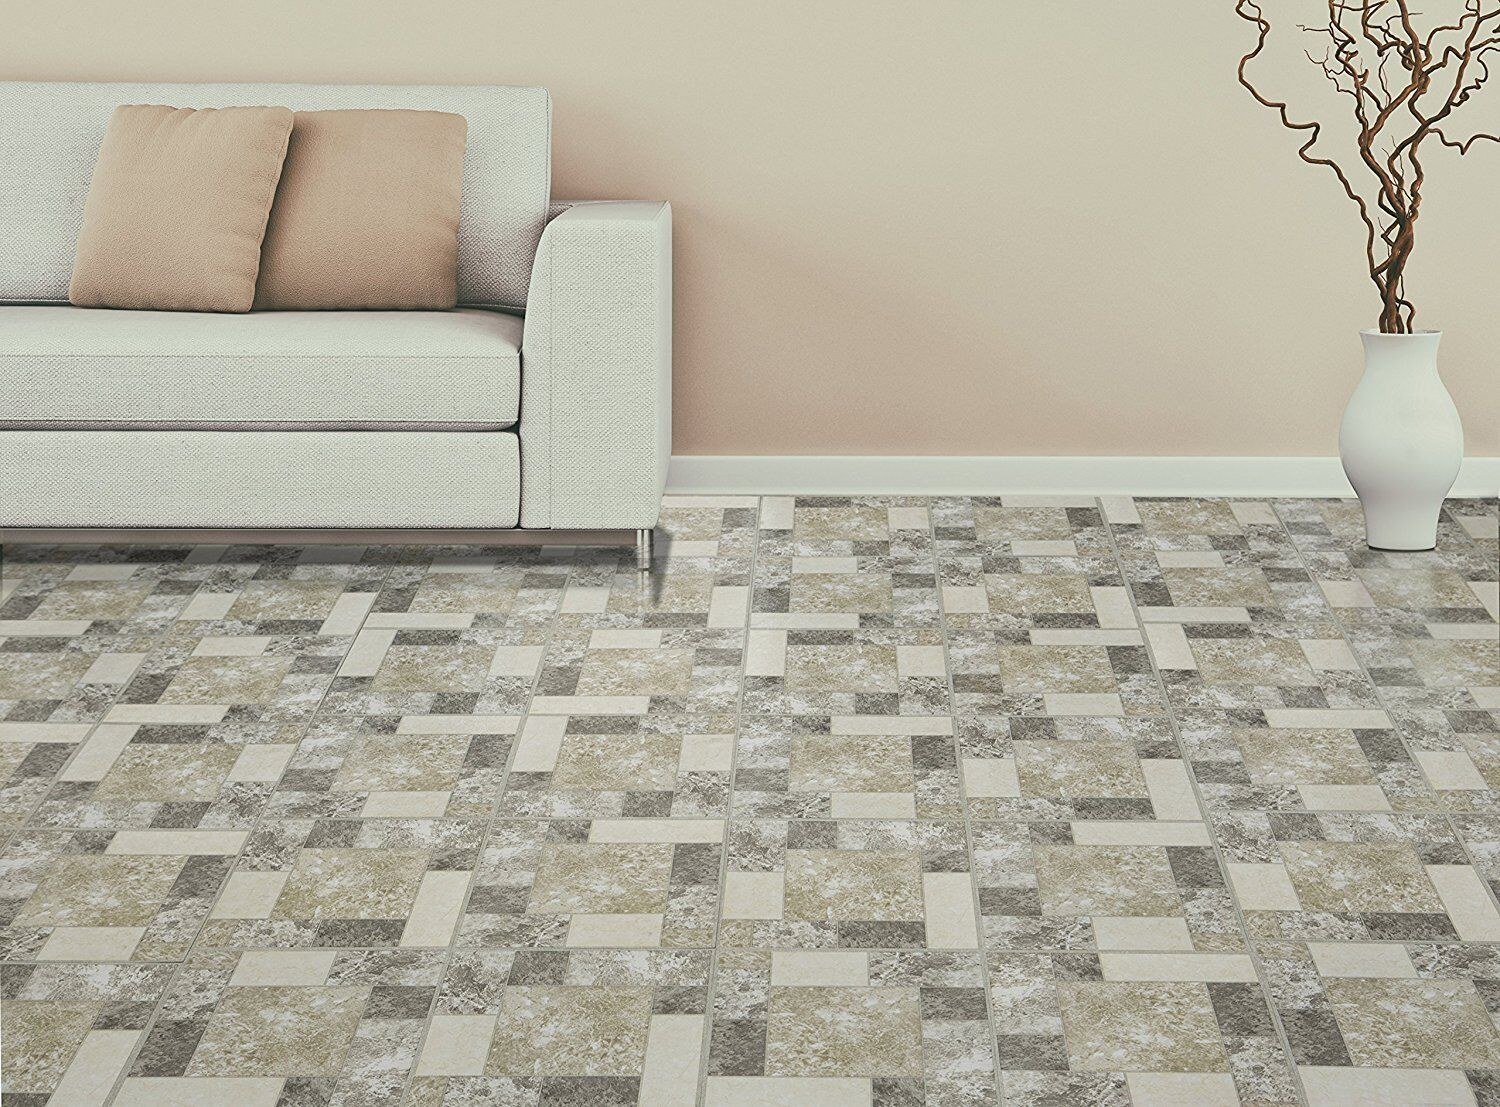 Vinyl floor tiles 20 pack flooring looks like real wood parquet picture 11 of 12 dailygadgetfo Images